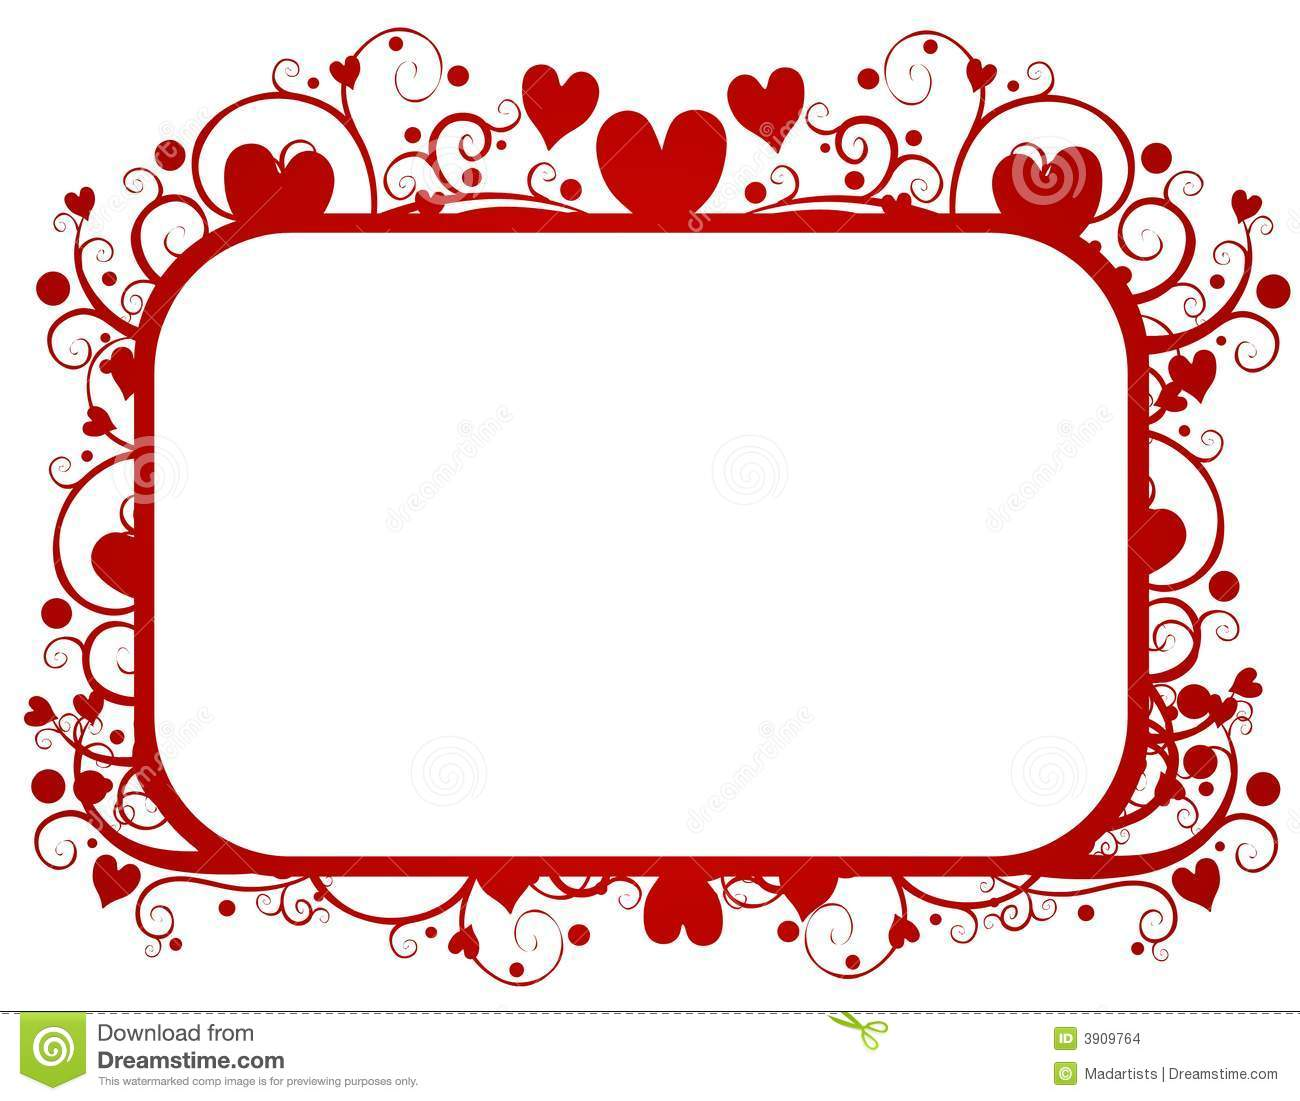 Red Hearts Swirls Valentineu0027s Day Frame Illustration 3909764   Megapixl